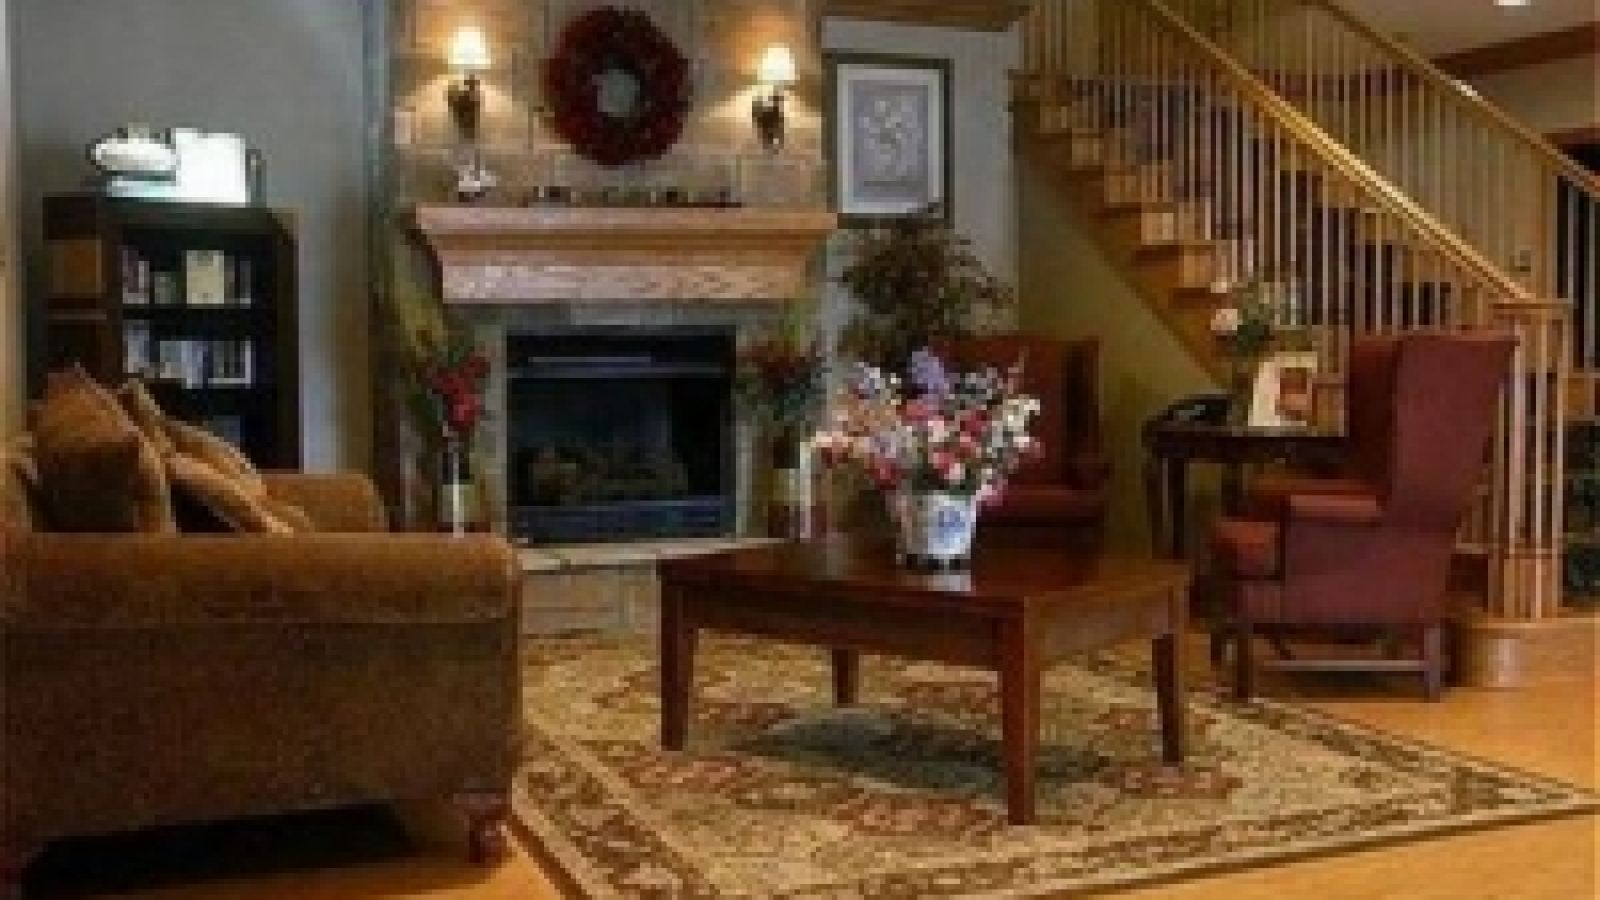 Country Inn & Suites Augusta - Georgia golf packages